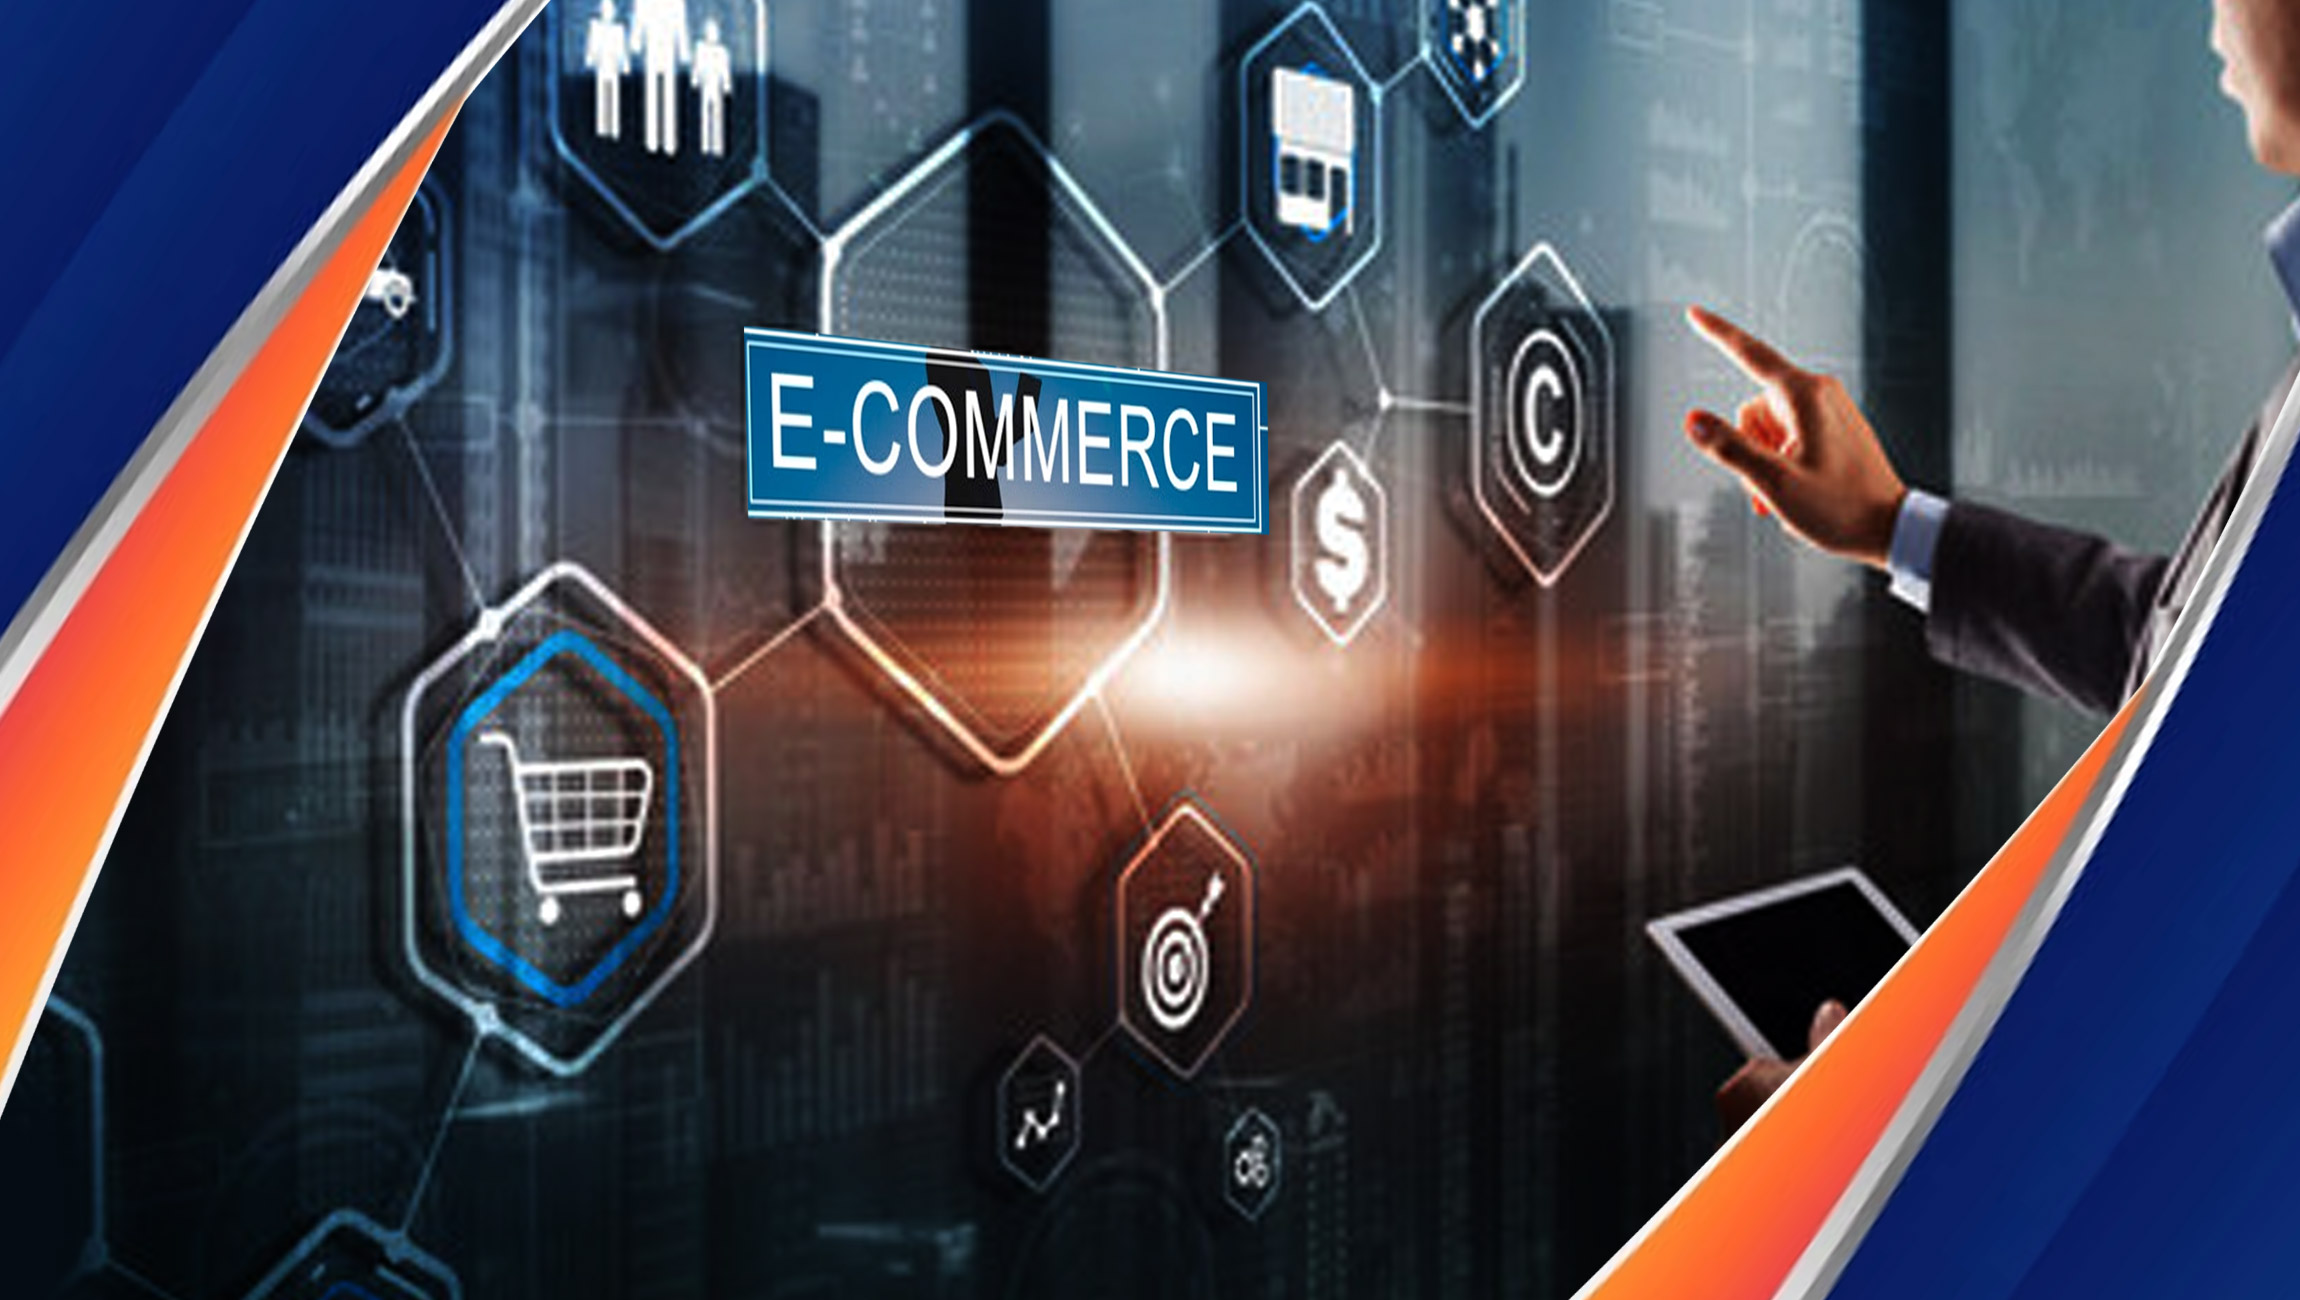 NEORIS Announces New Smart ECommerce Solutions And Services To Accelerate Digital Adoption In Direct To Consumer